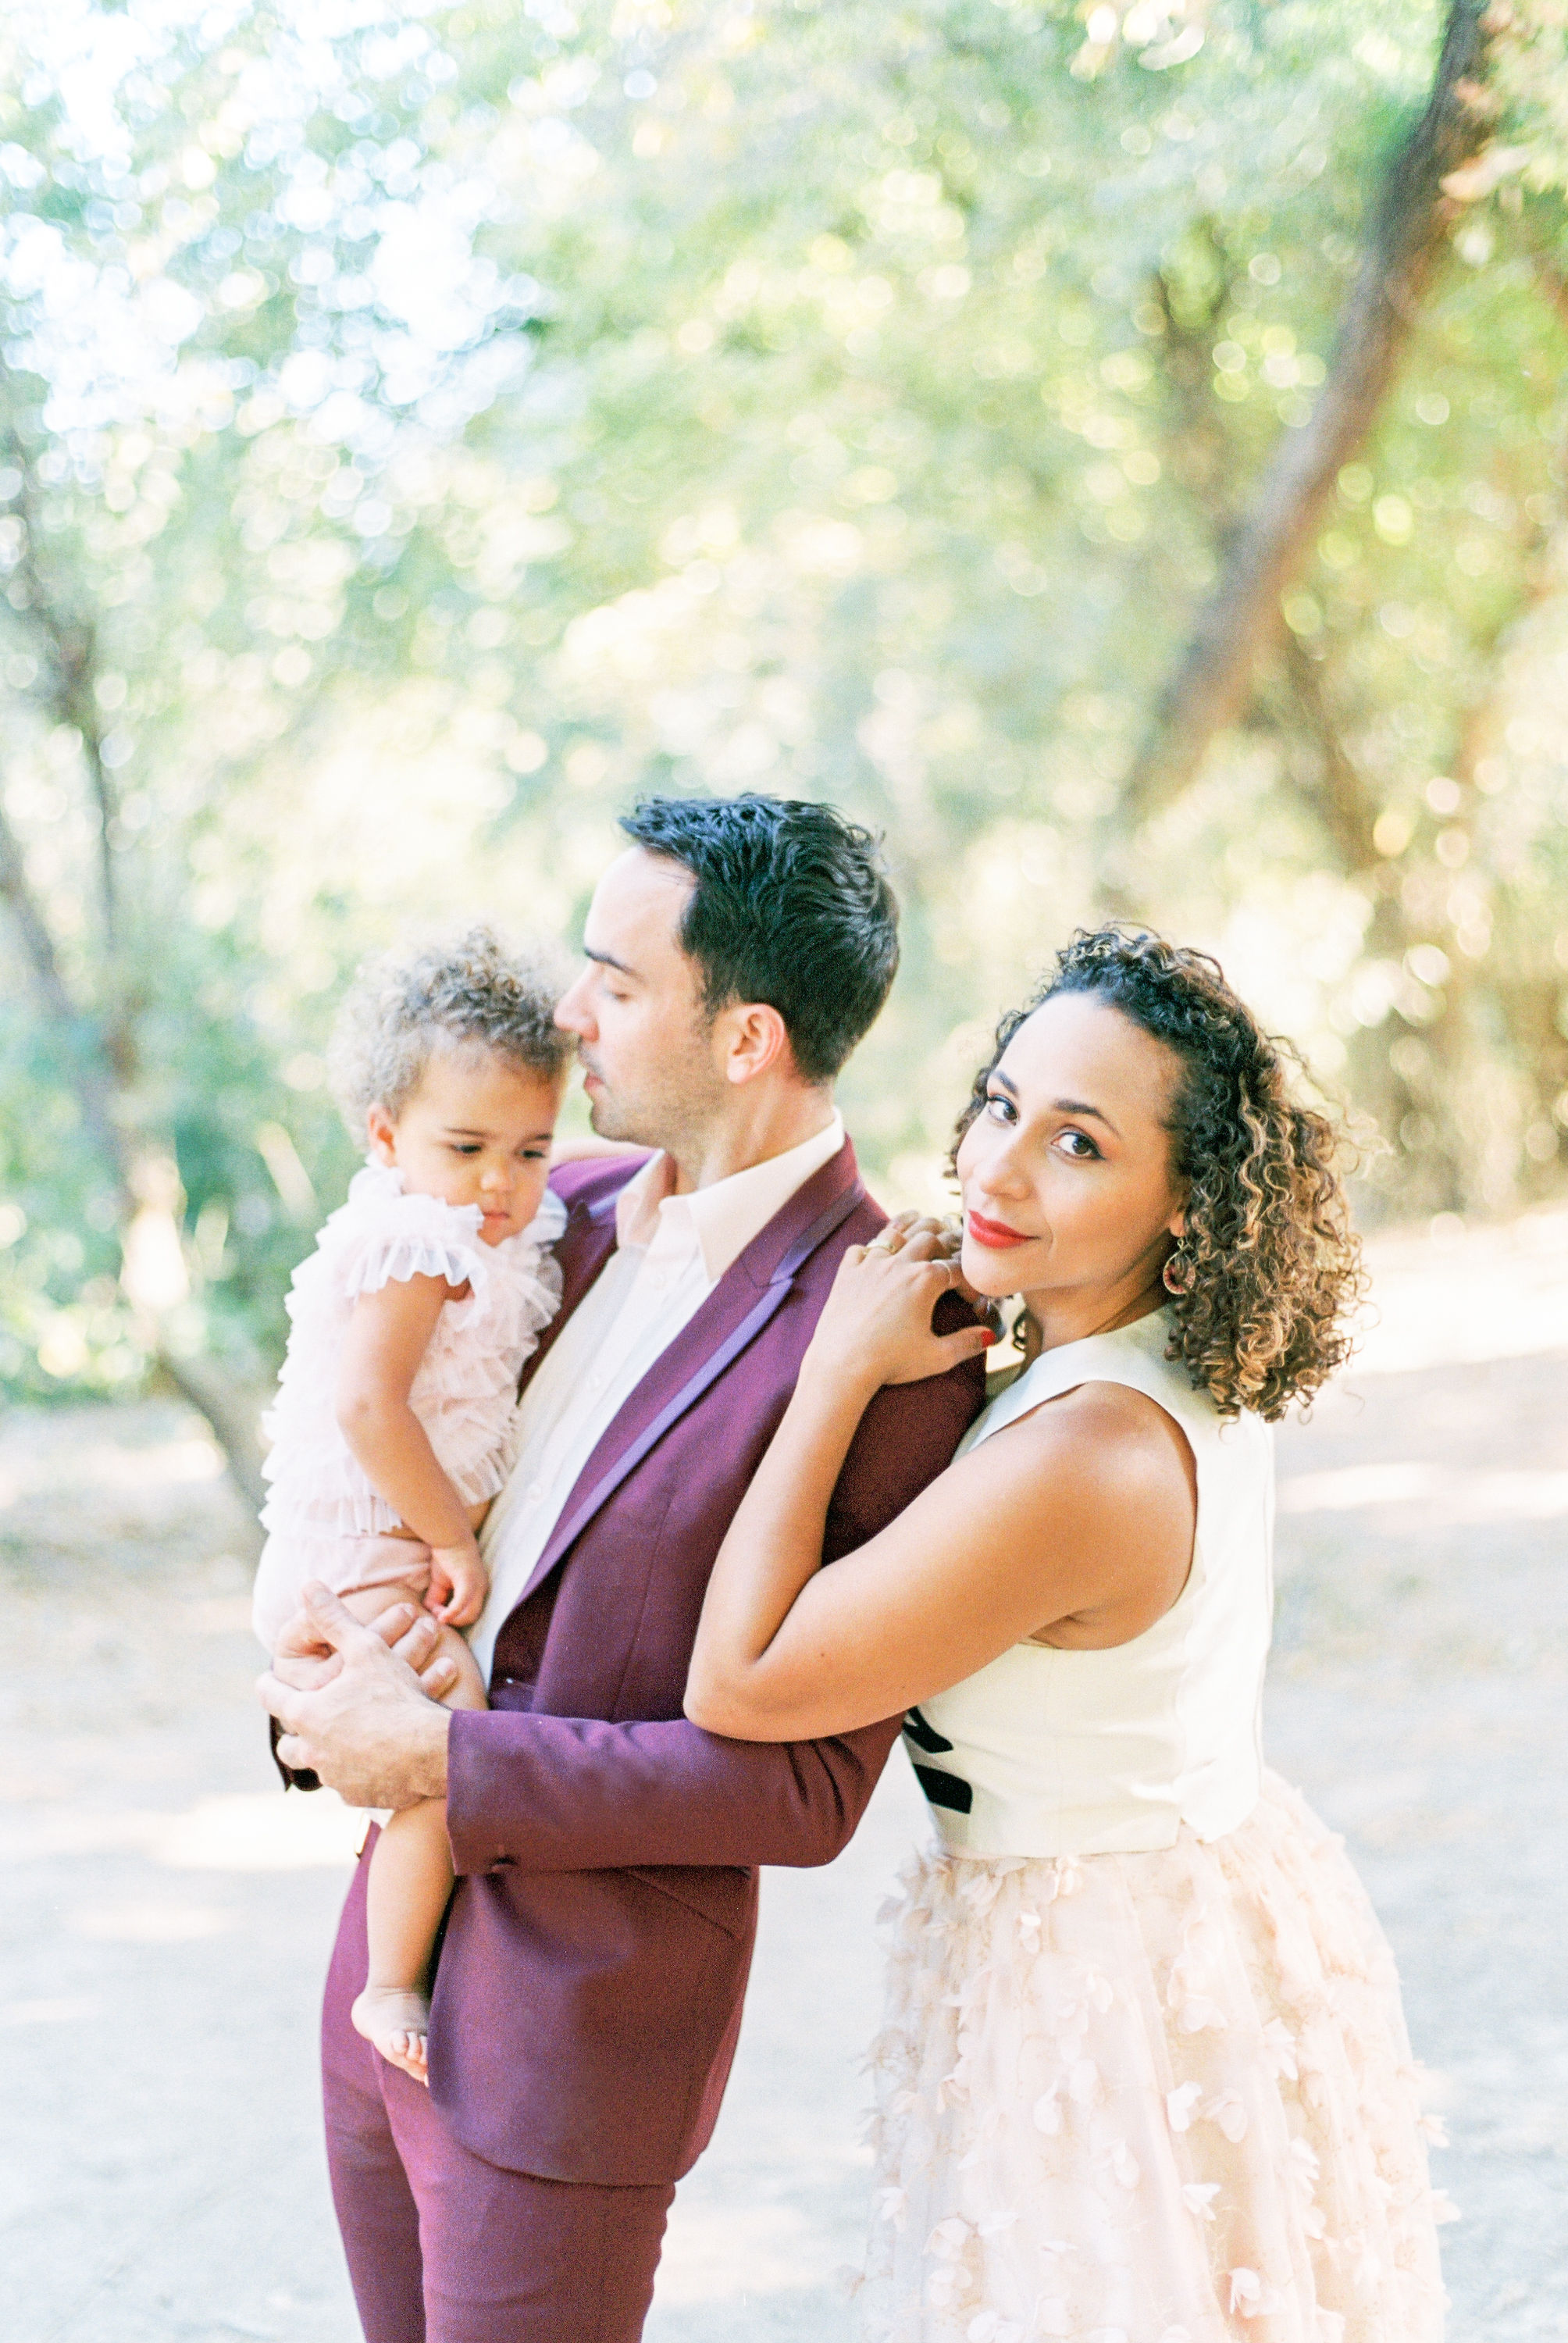 Our family portrait by  Jecki & Co  Photography